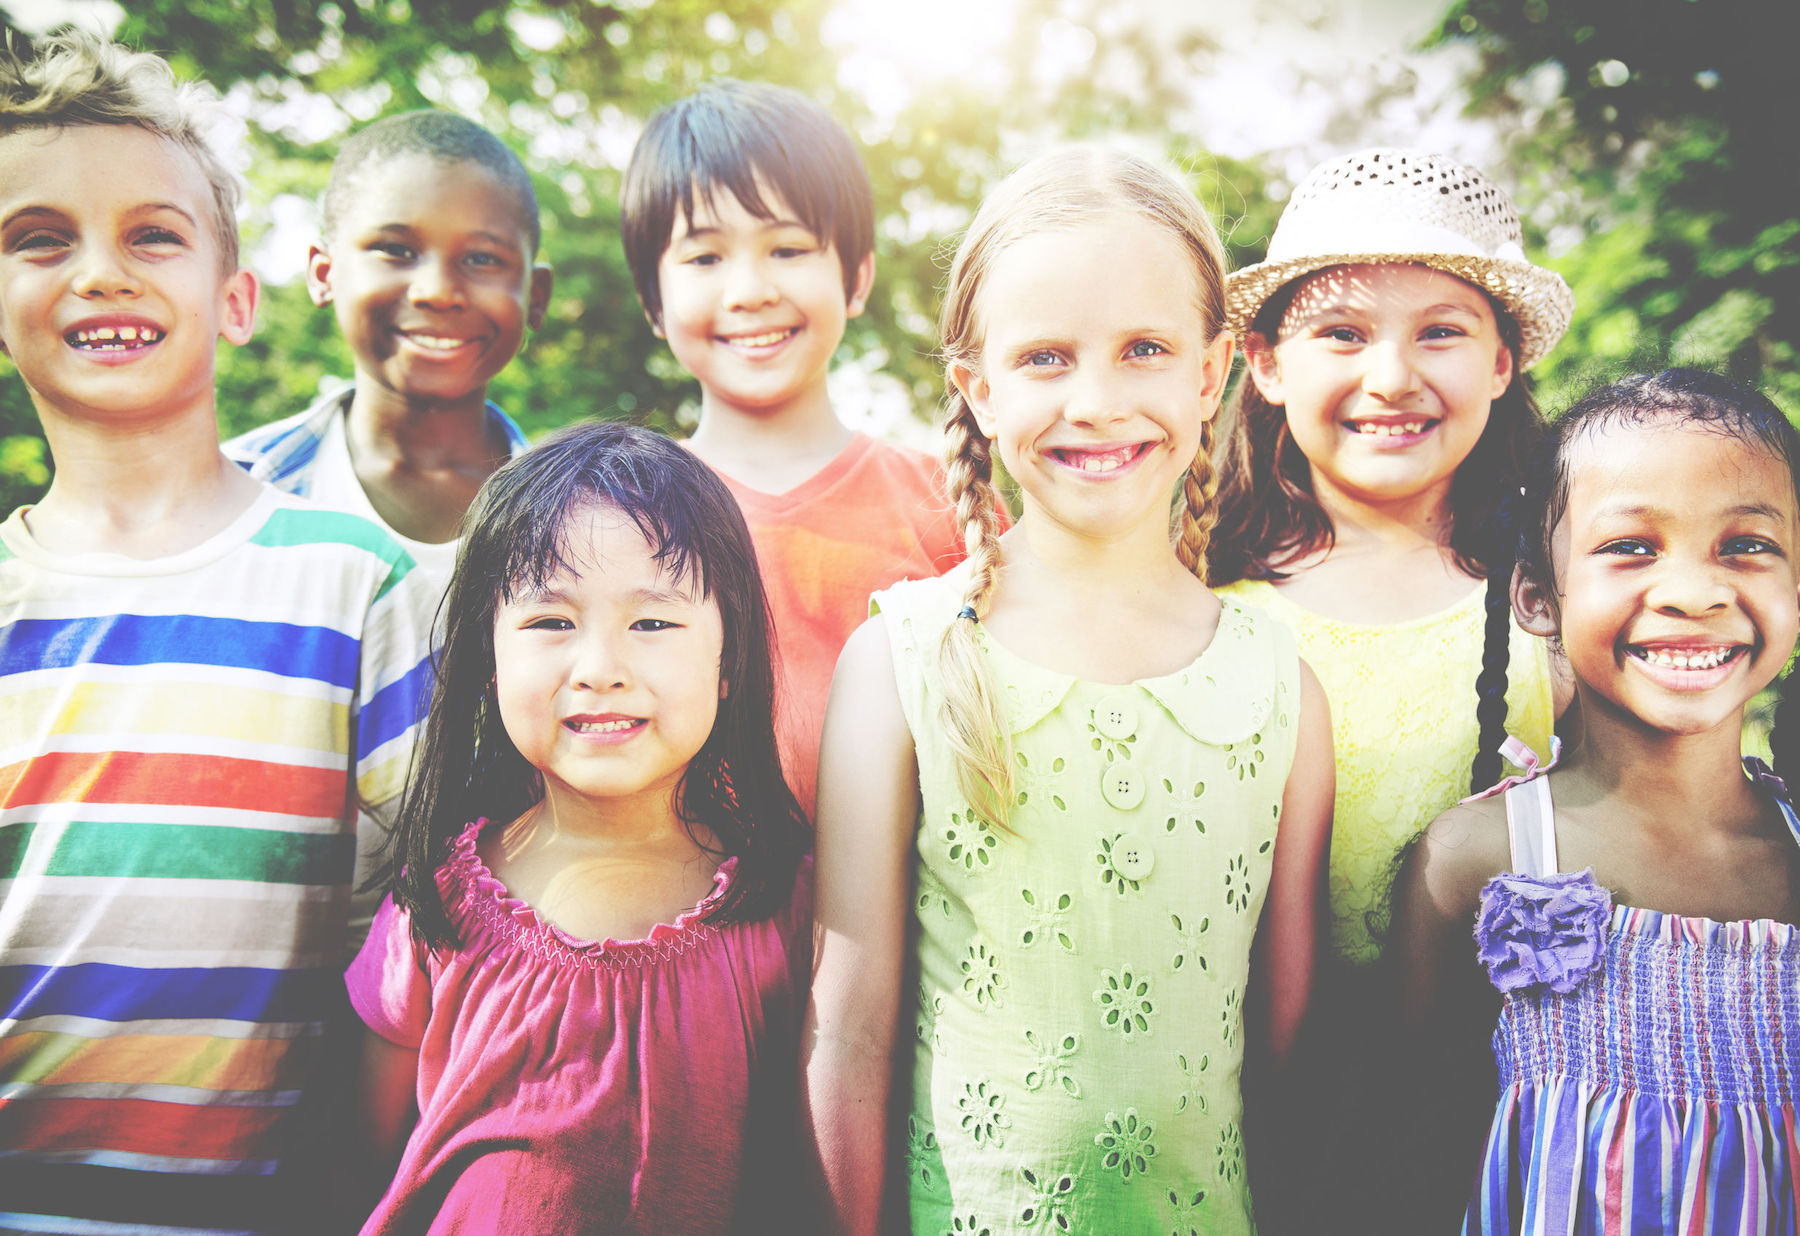 46820519 - group of children smiling cheerful concept